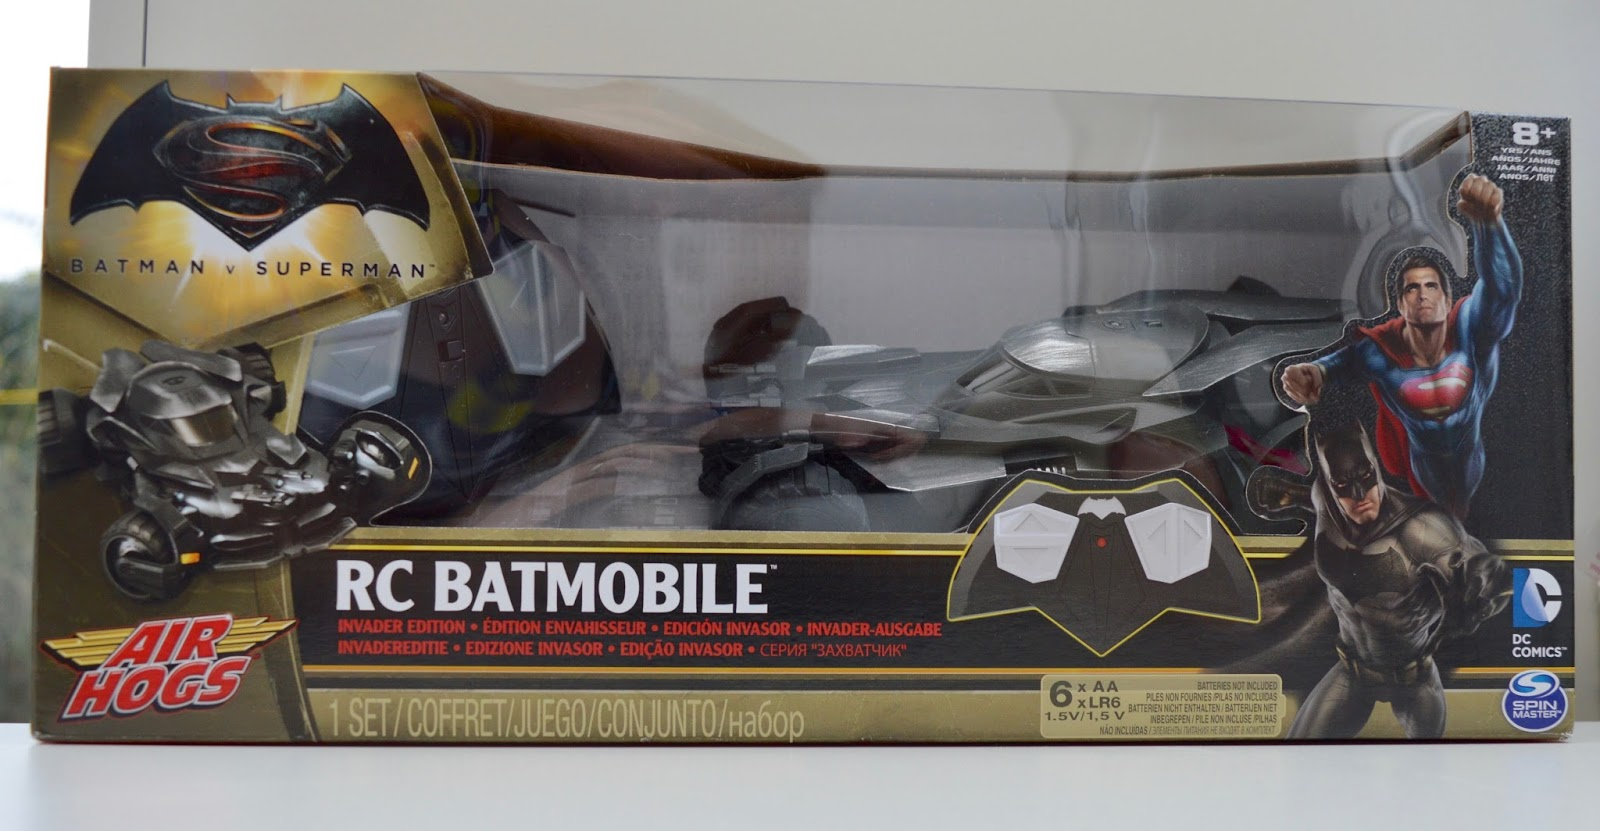 Air Hogs RC Batmobile | A Review - 1:24 replica model from Batman vs Superman - box